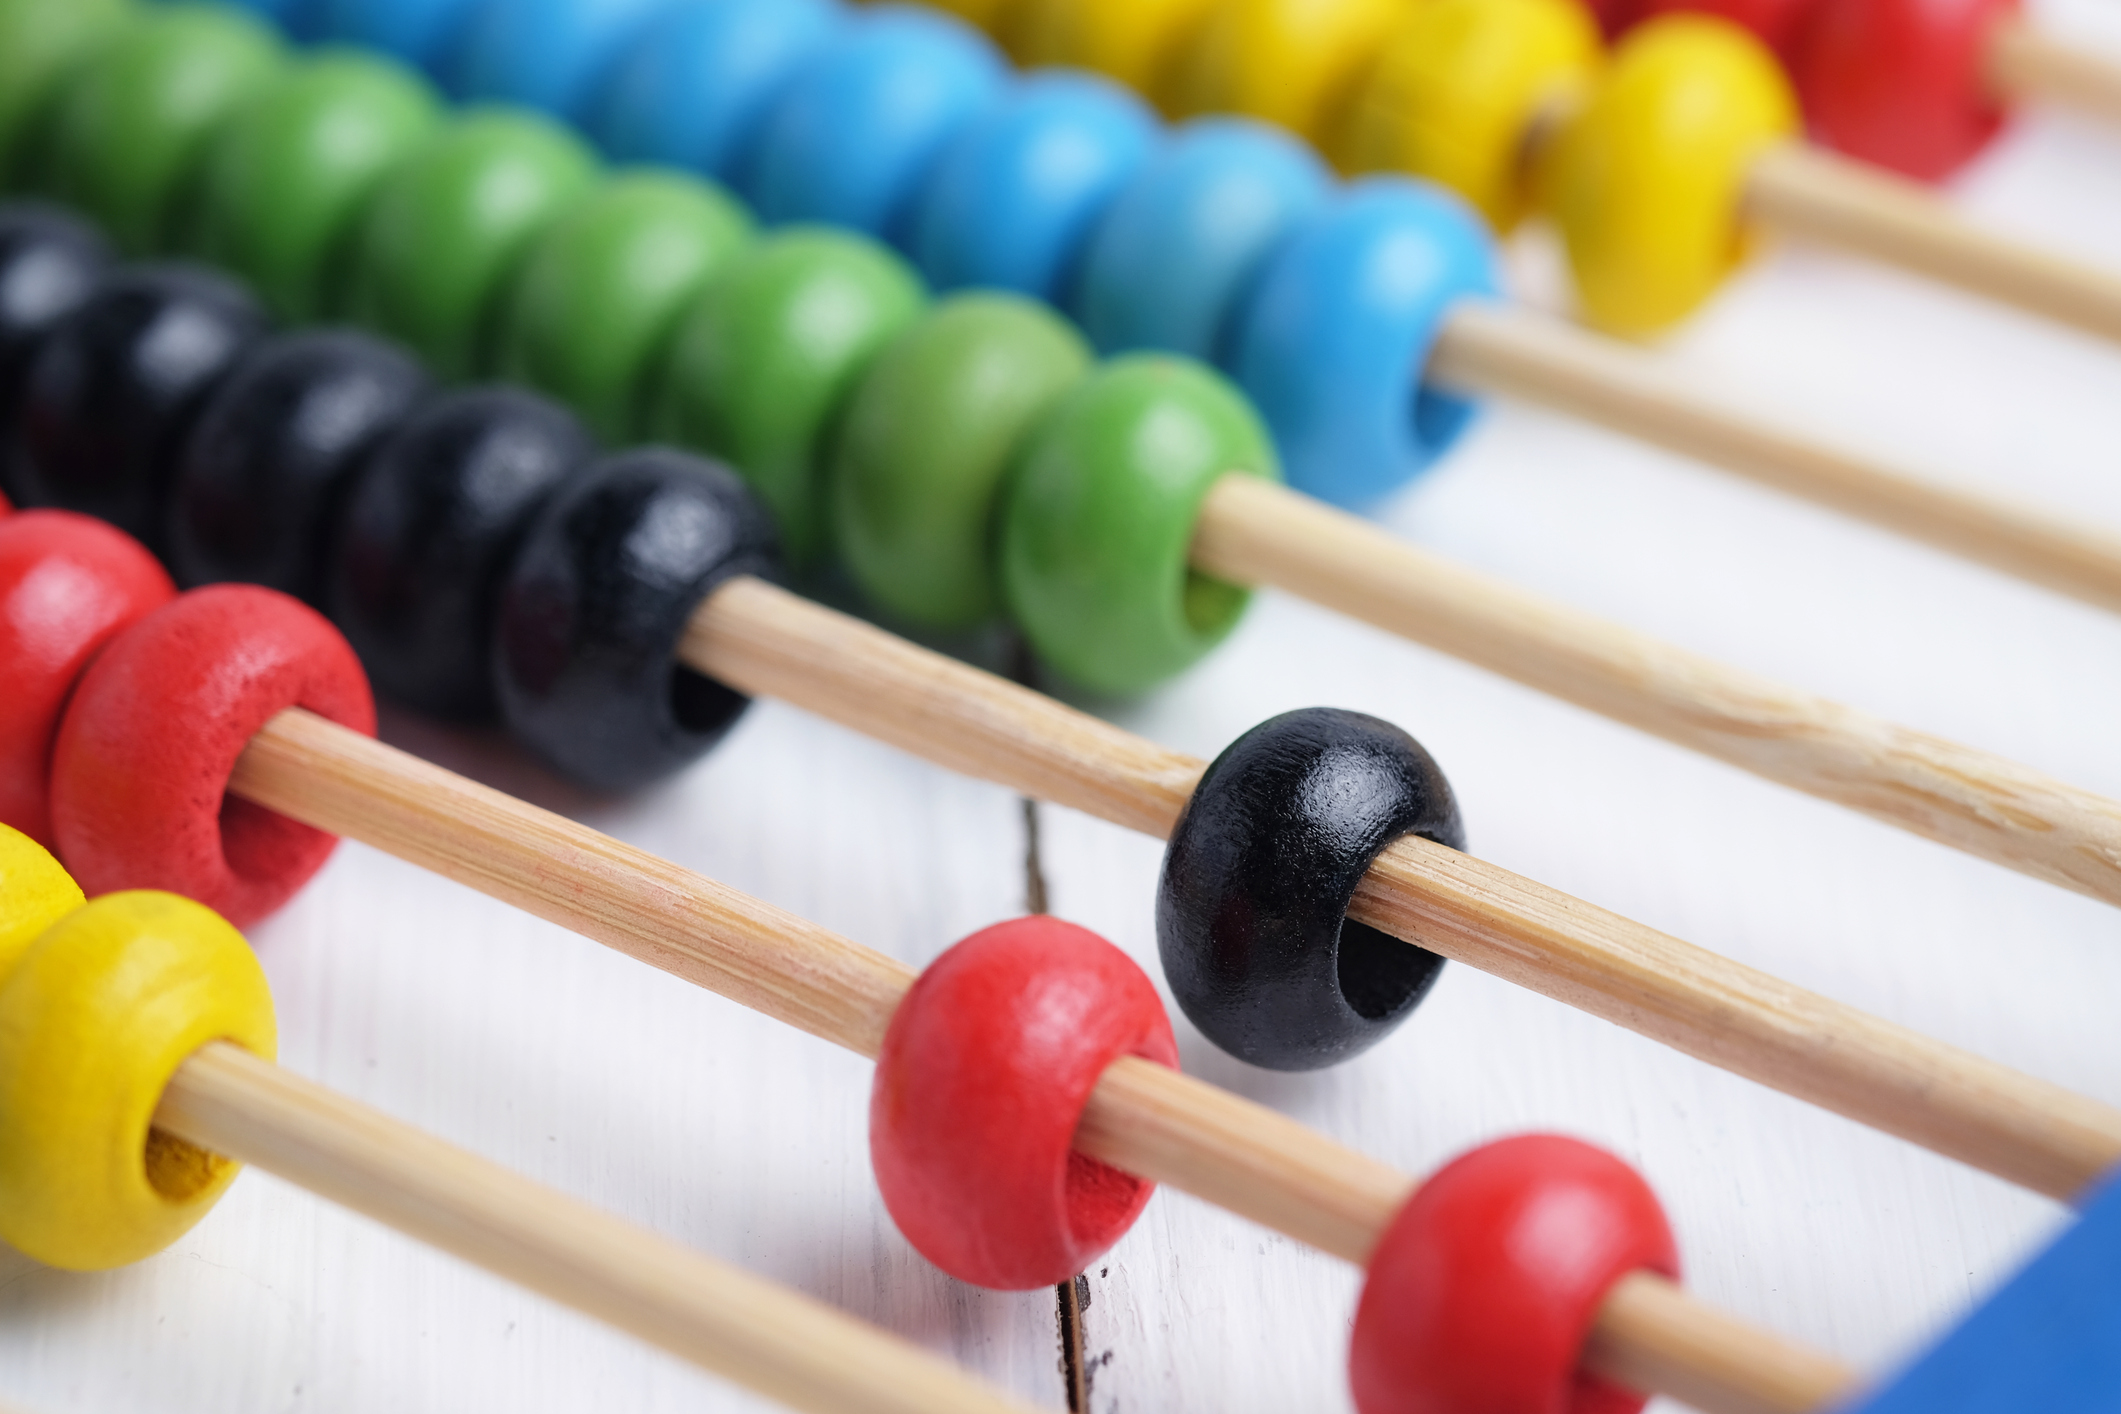 An image of a colorful abacus for counting.